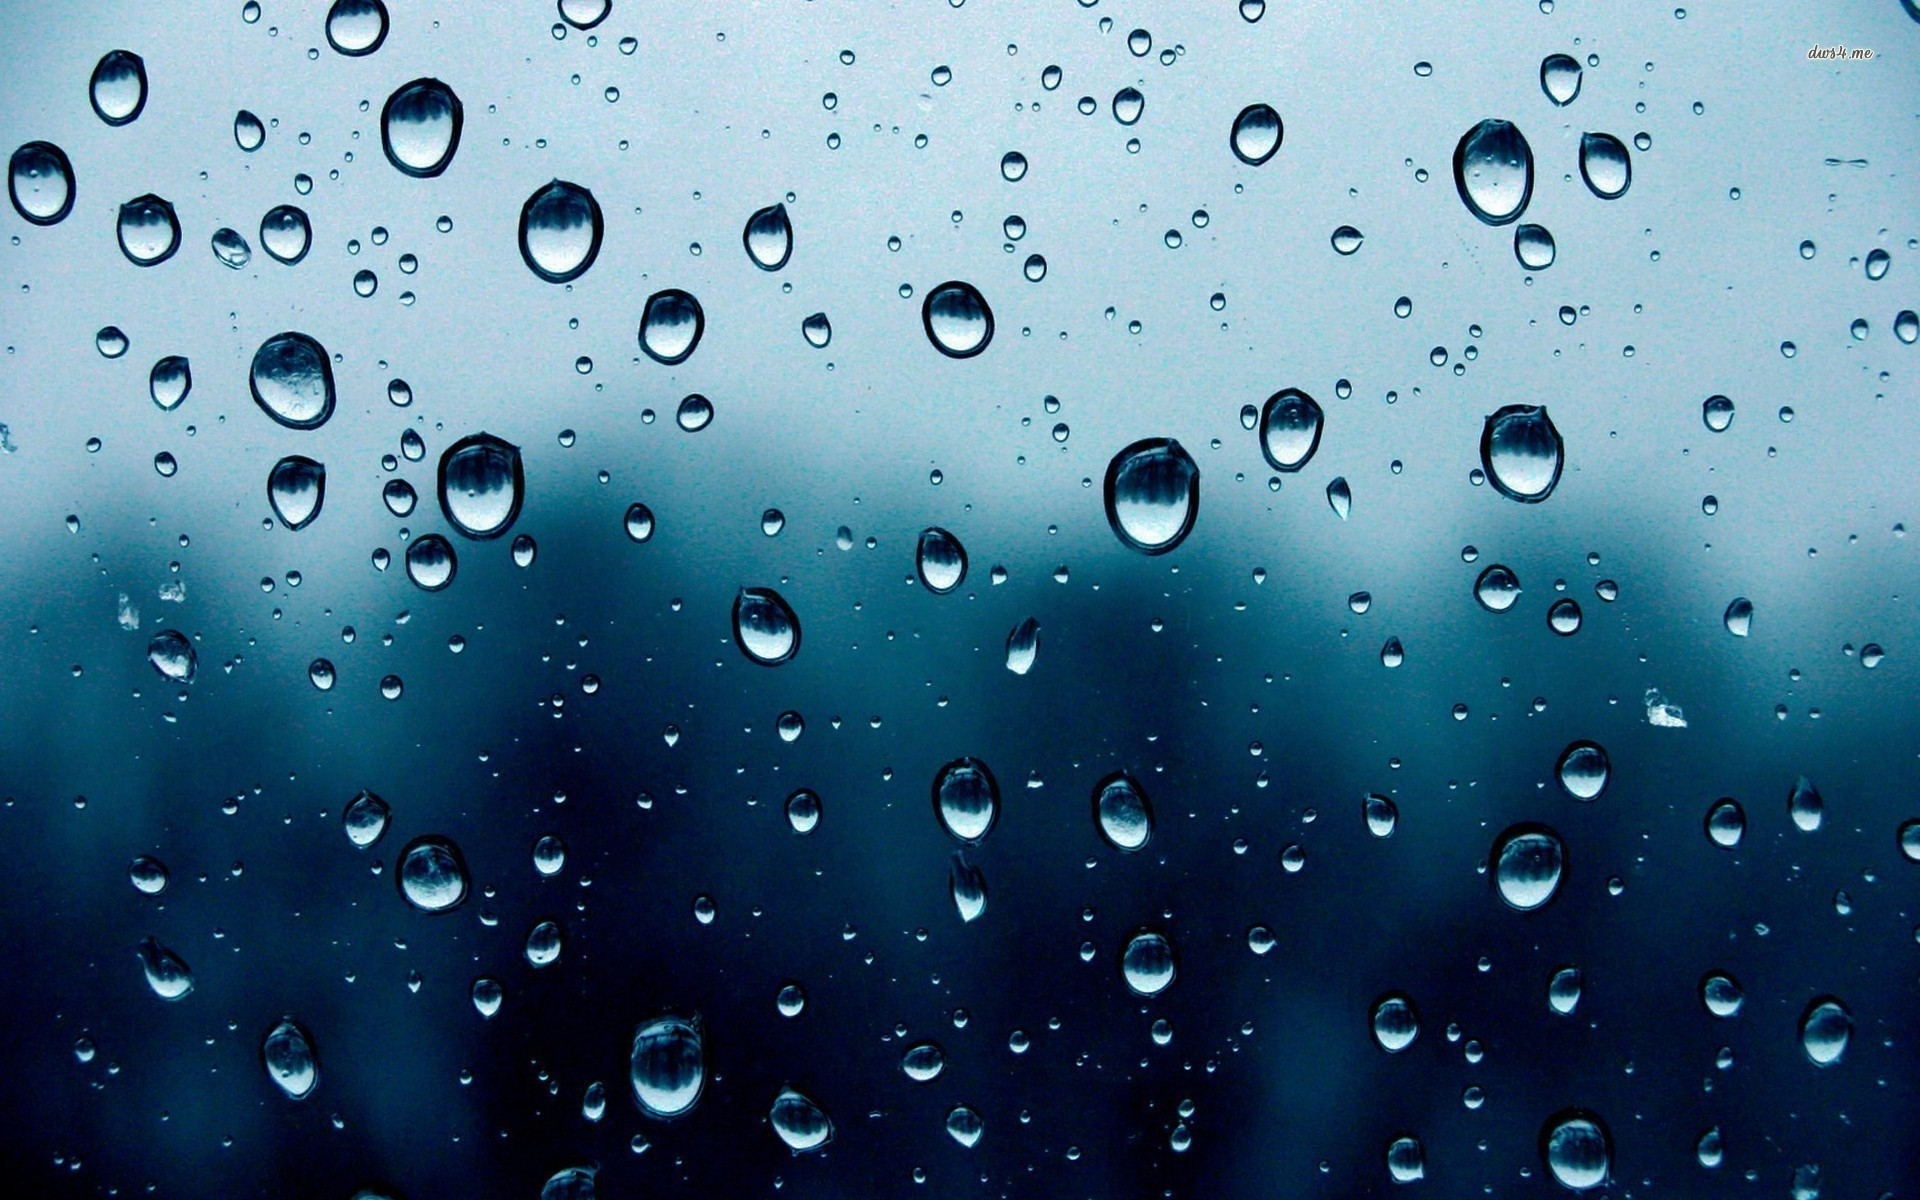 View And Download Rain Drops Desktop Wallpapers